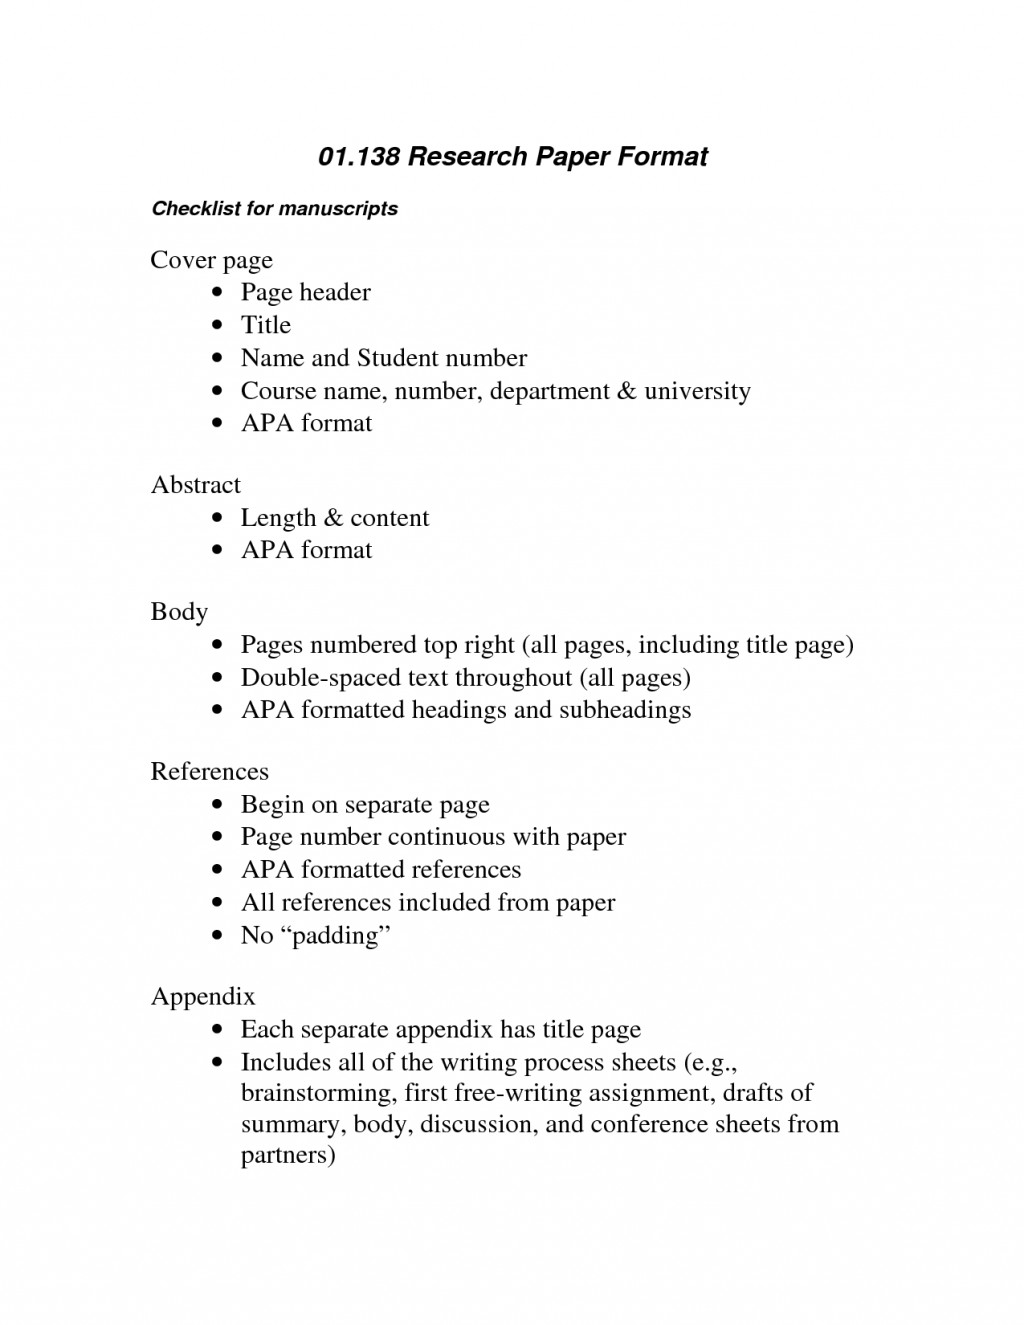 003 How To Write Reference Page In Research Paper Apa Unique Style Sample Large